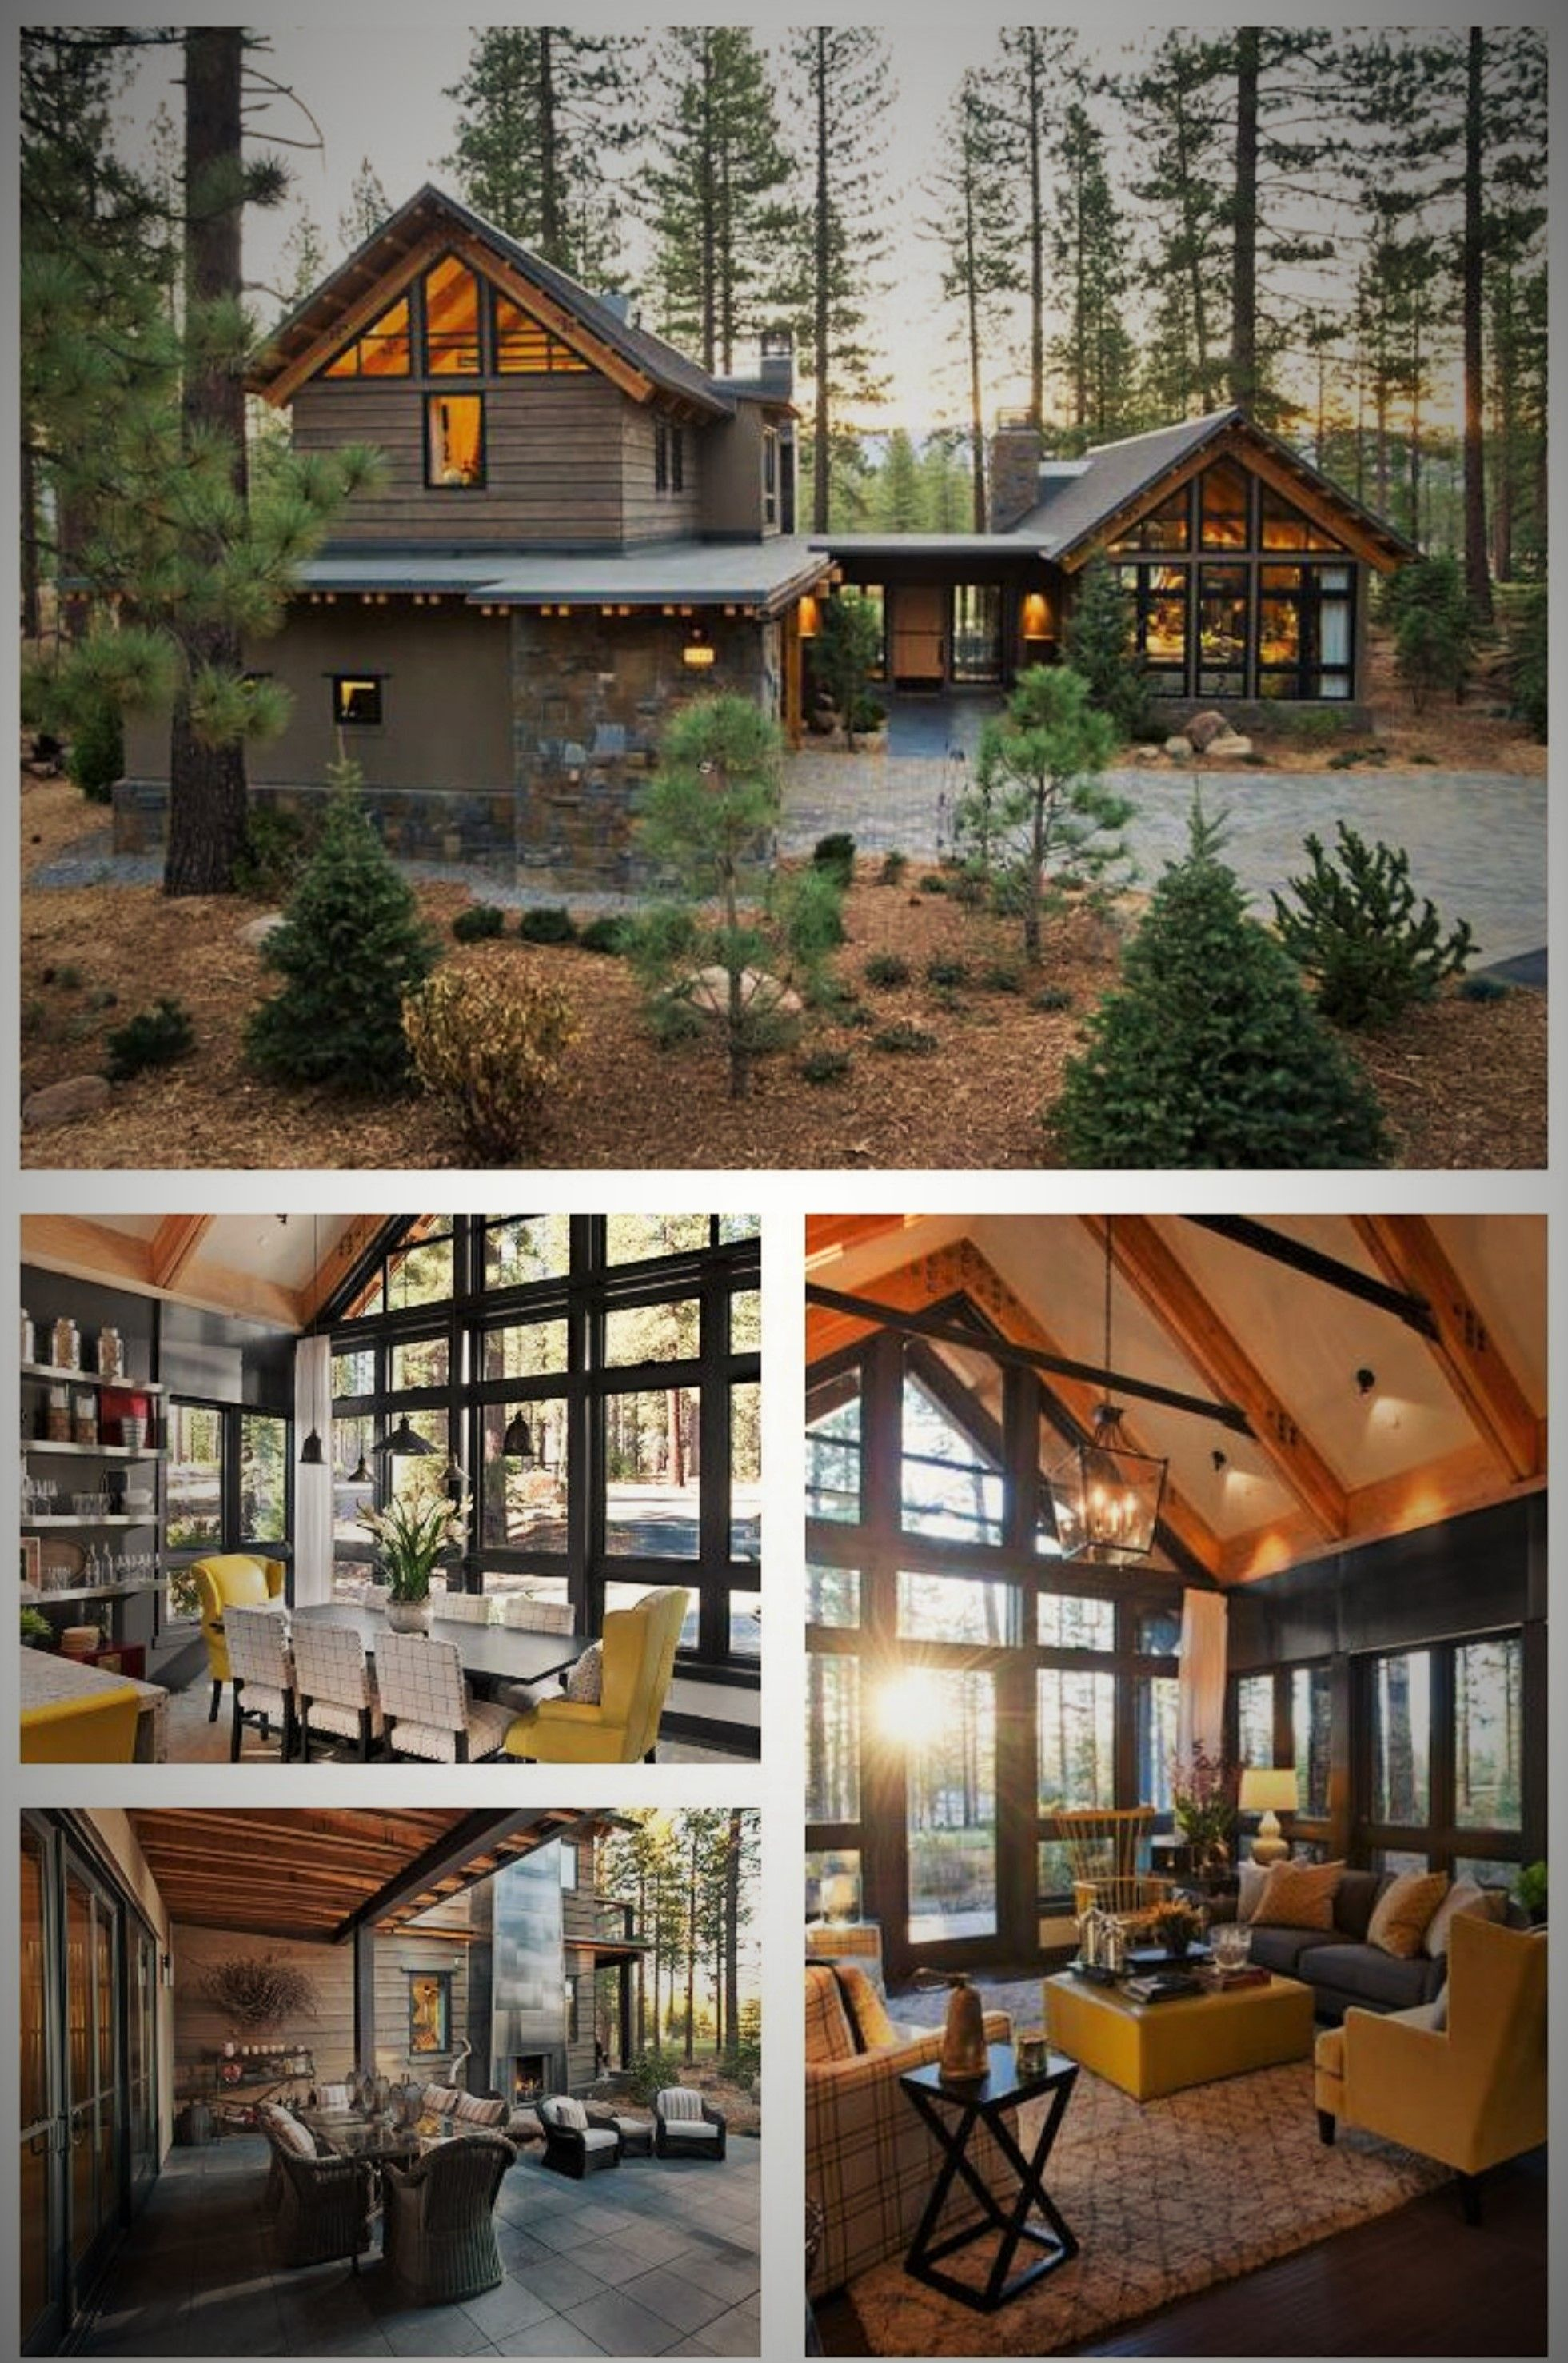 hgtv smart homes httpphotoshgtvcomphotossmart homes 2015 home ideas pinterest hgtv pole building house and house